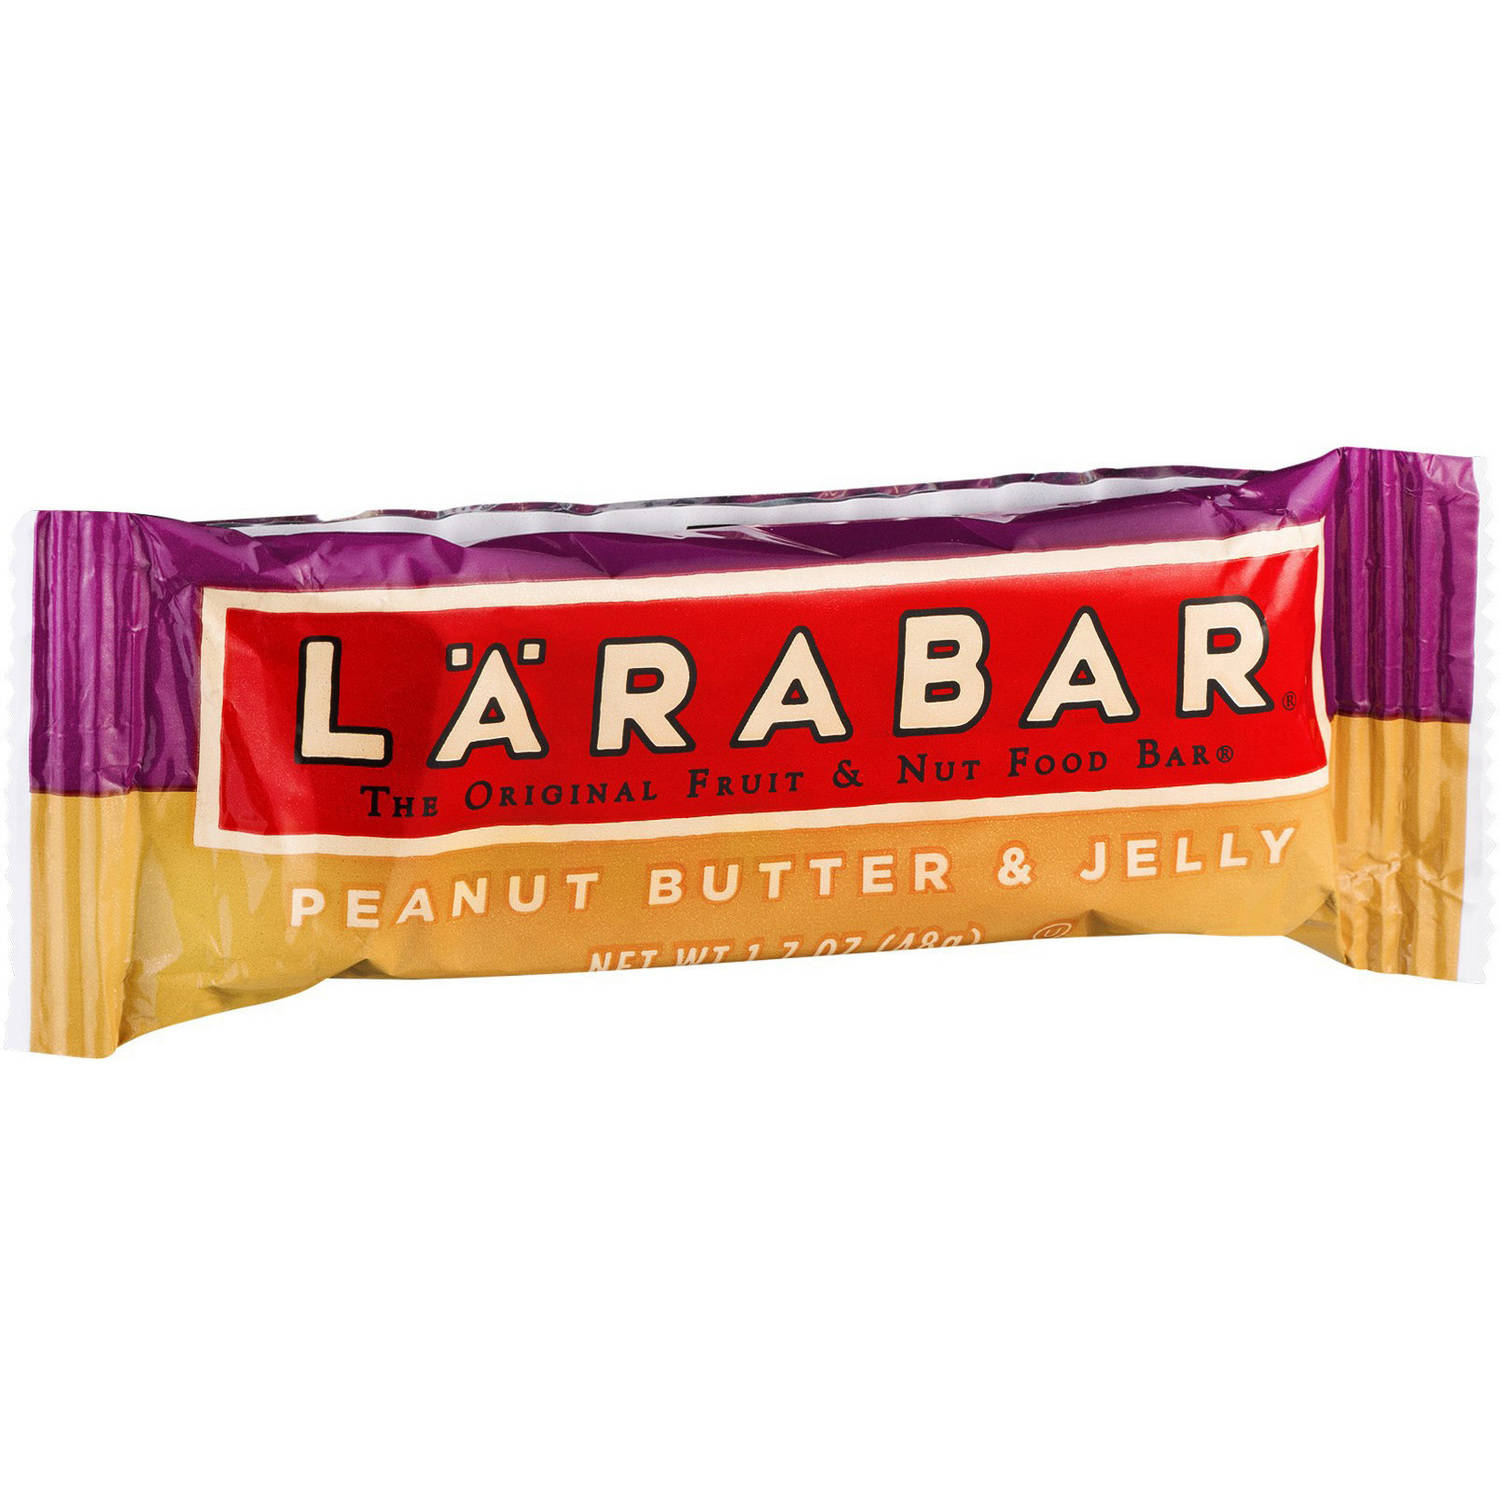 Larabar Fruit & Nut Bar, Peanut Butter & Jelly, 6g Protein, 16 Ct